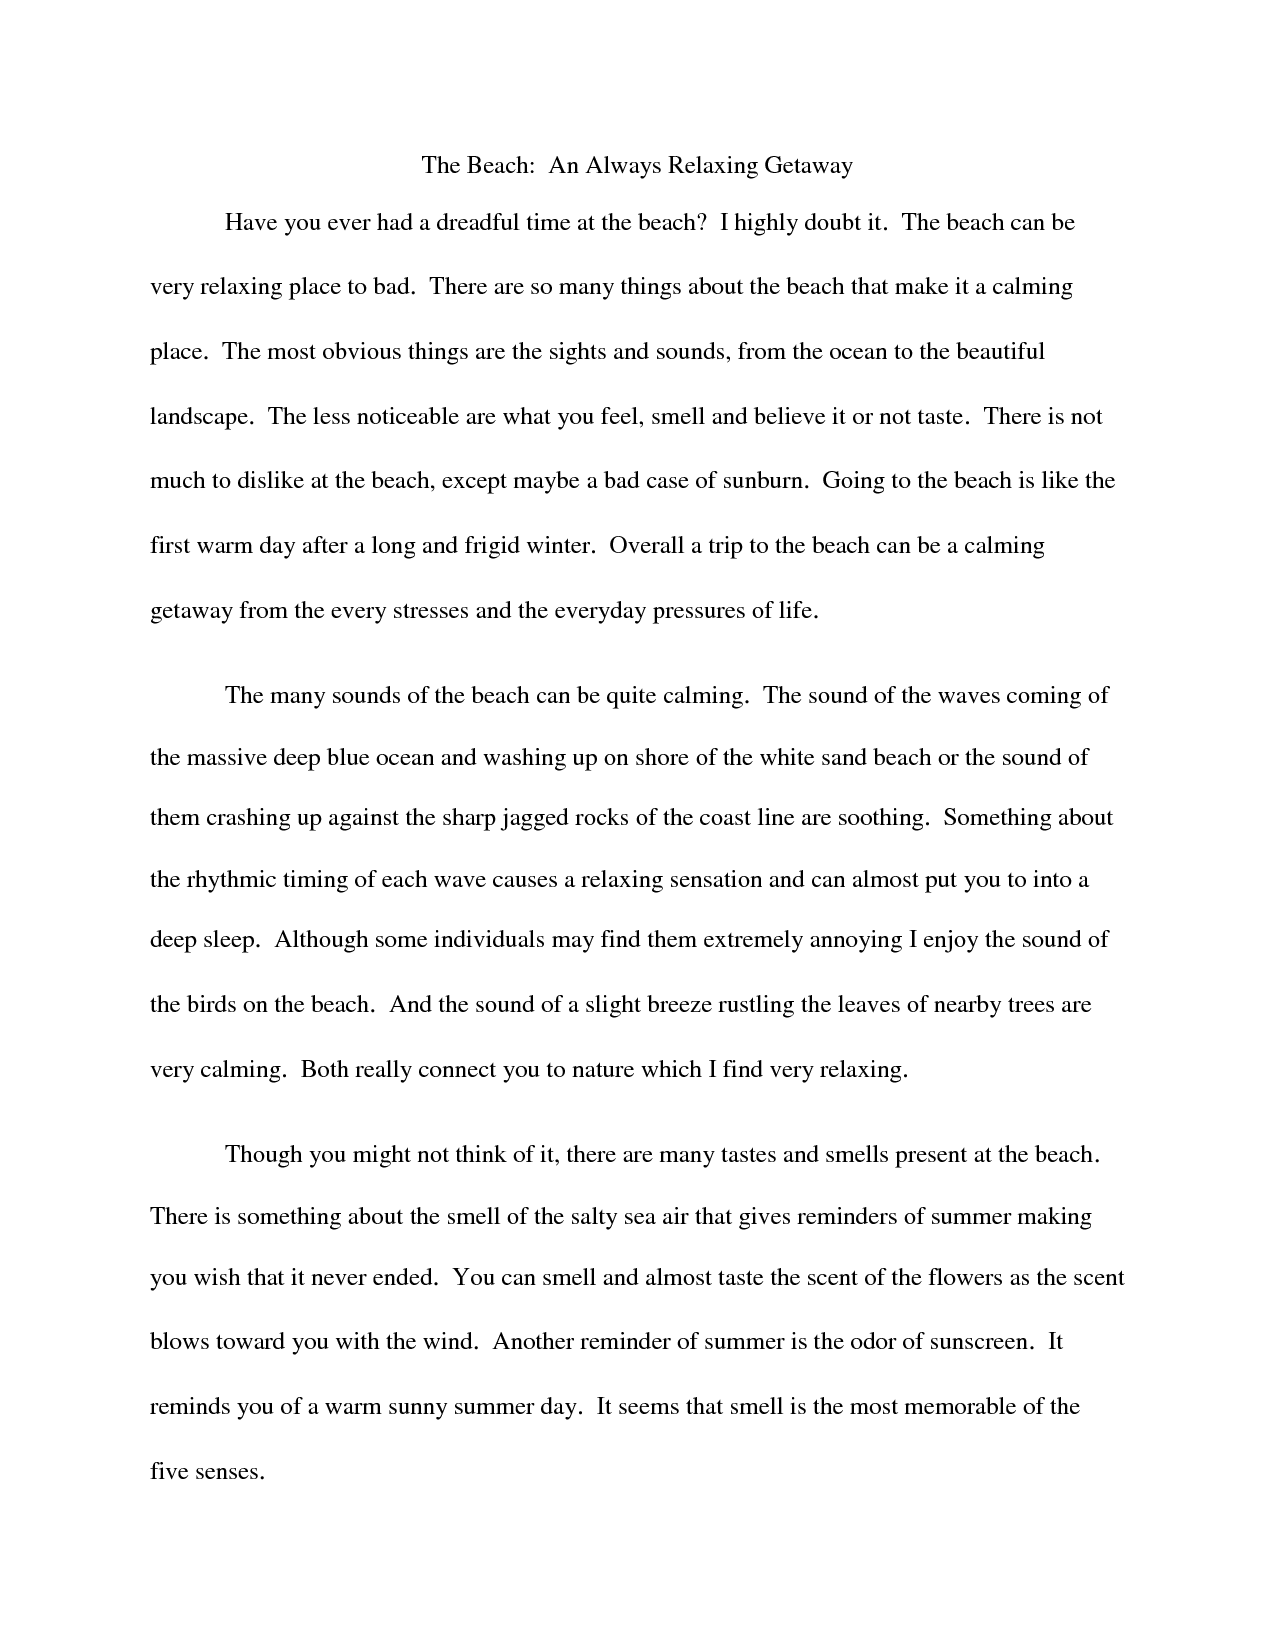 006 Essay Example Descriptive Beach Essays College That Stand Out Odvqltnc Short On The Sunset Paper Barefoot About Walk Vacation Narrative At Night Free Unbelievable Examples For Middle School Students Sample A Place Pdf Full